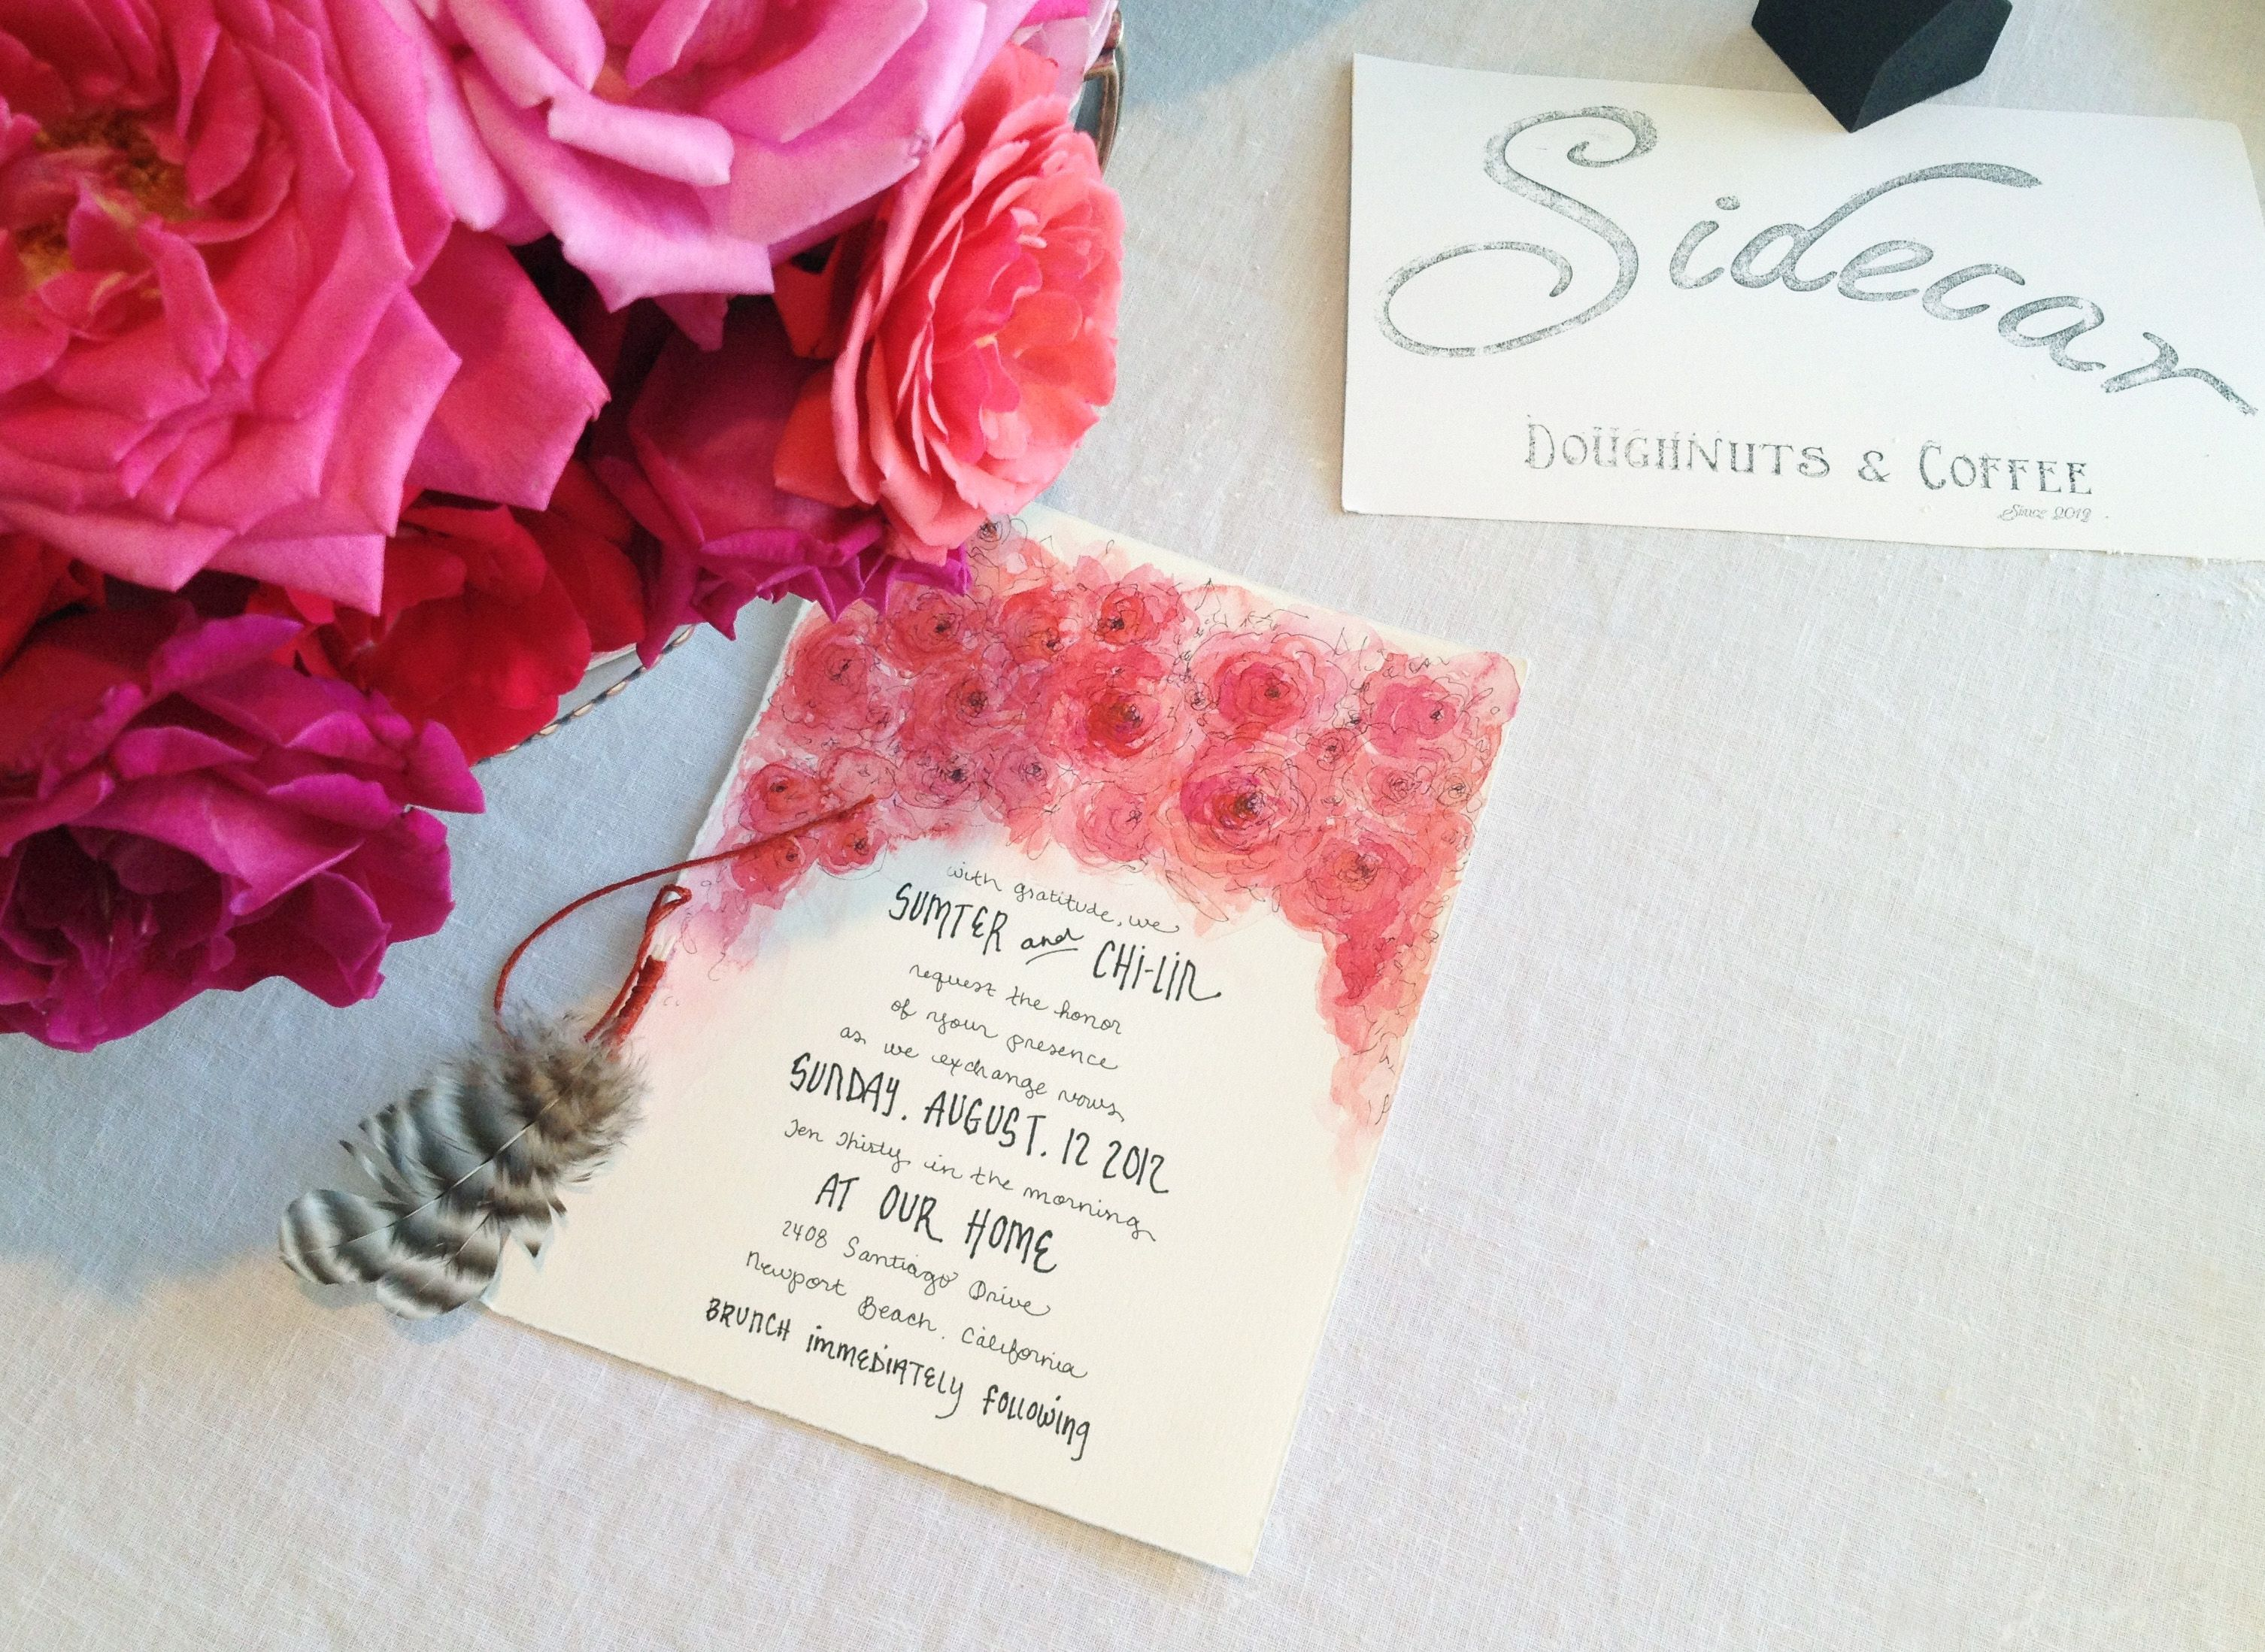 wedding invitation - chi-lin & sumter | LMNOP | Pinterest | Wedding ...